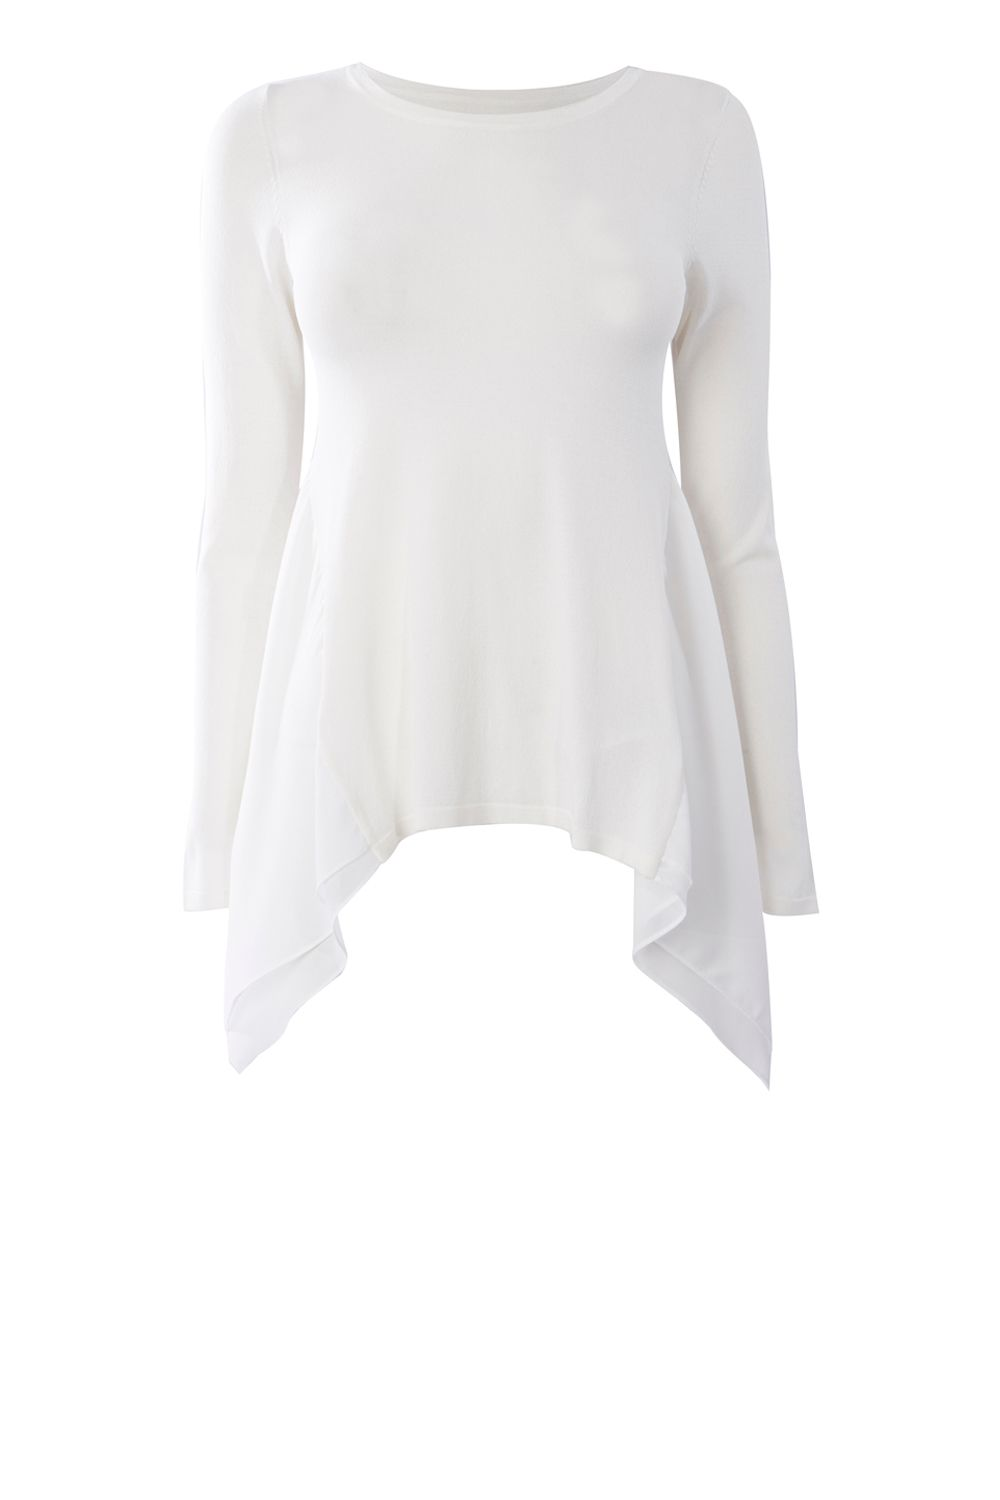 Coast Bourbon Knit Top, White